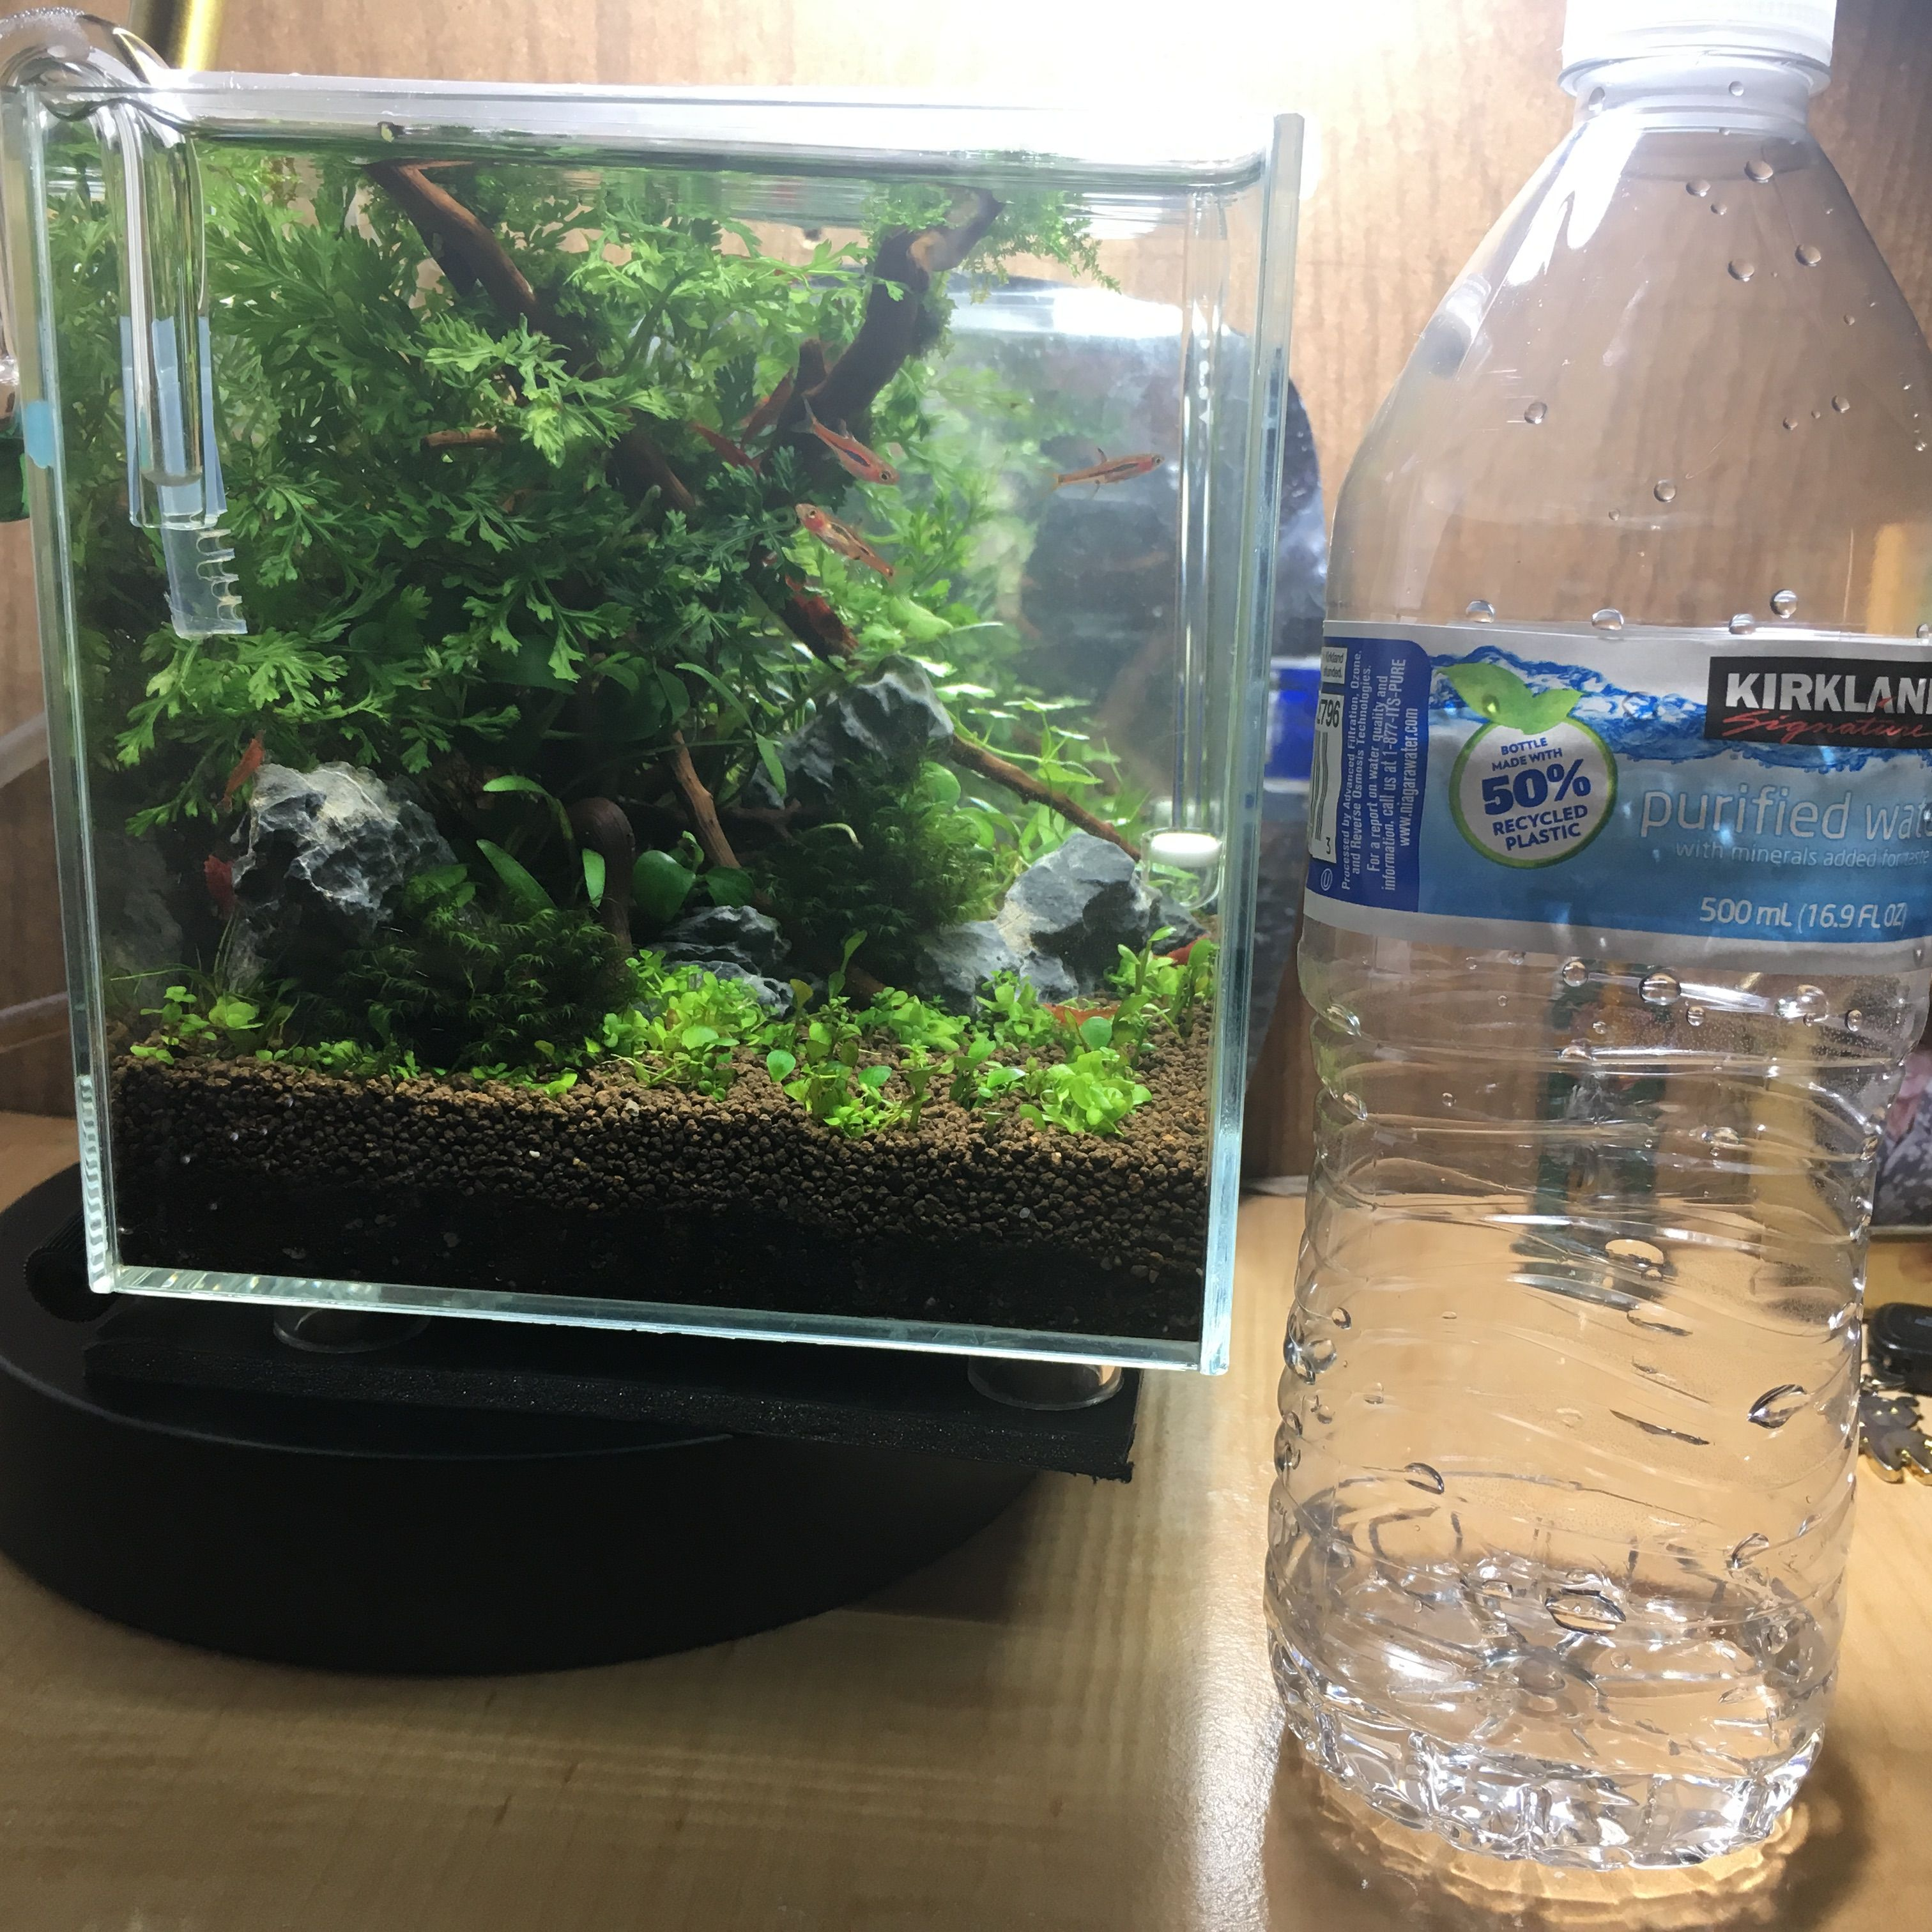 Size Comparison With Water Bottle Made A Top Fin Calm 5 Gal For A Betta Into A High Tech Tank For Cherry Shrimp And A Few Chili Ras Aquascape Nano Tank Betta